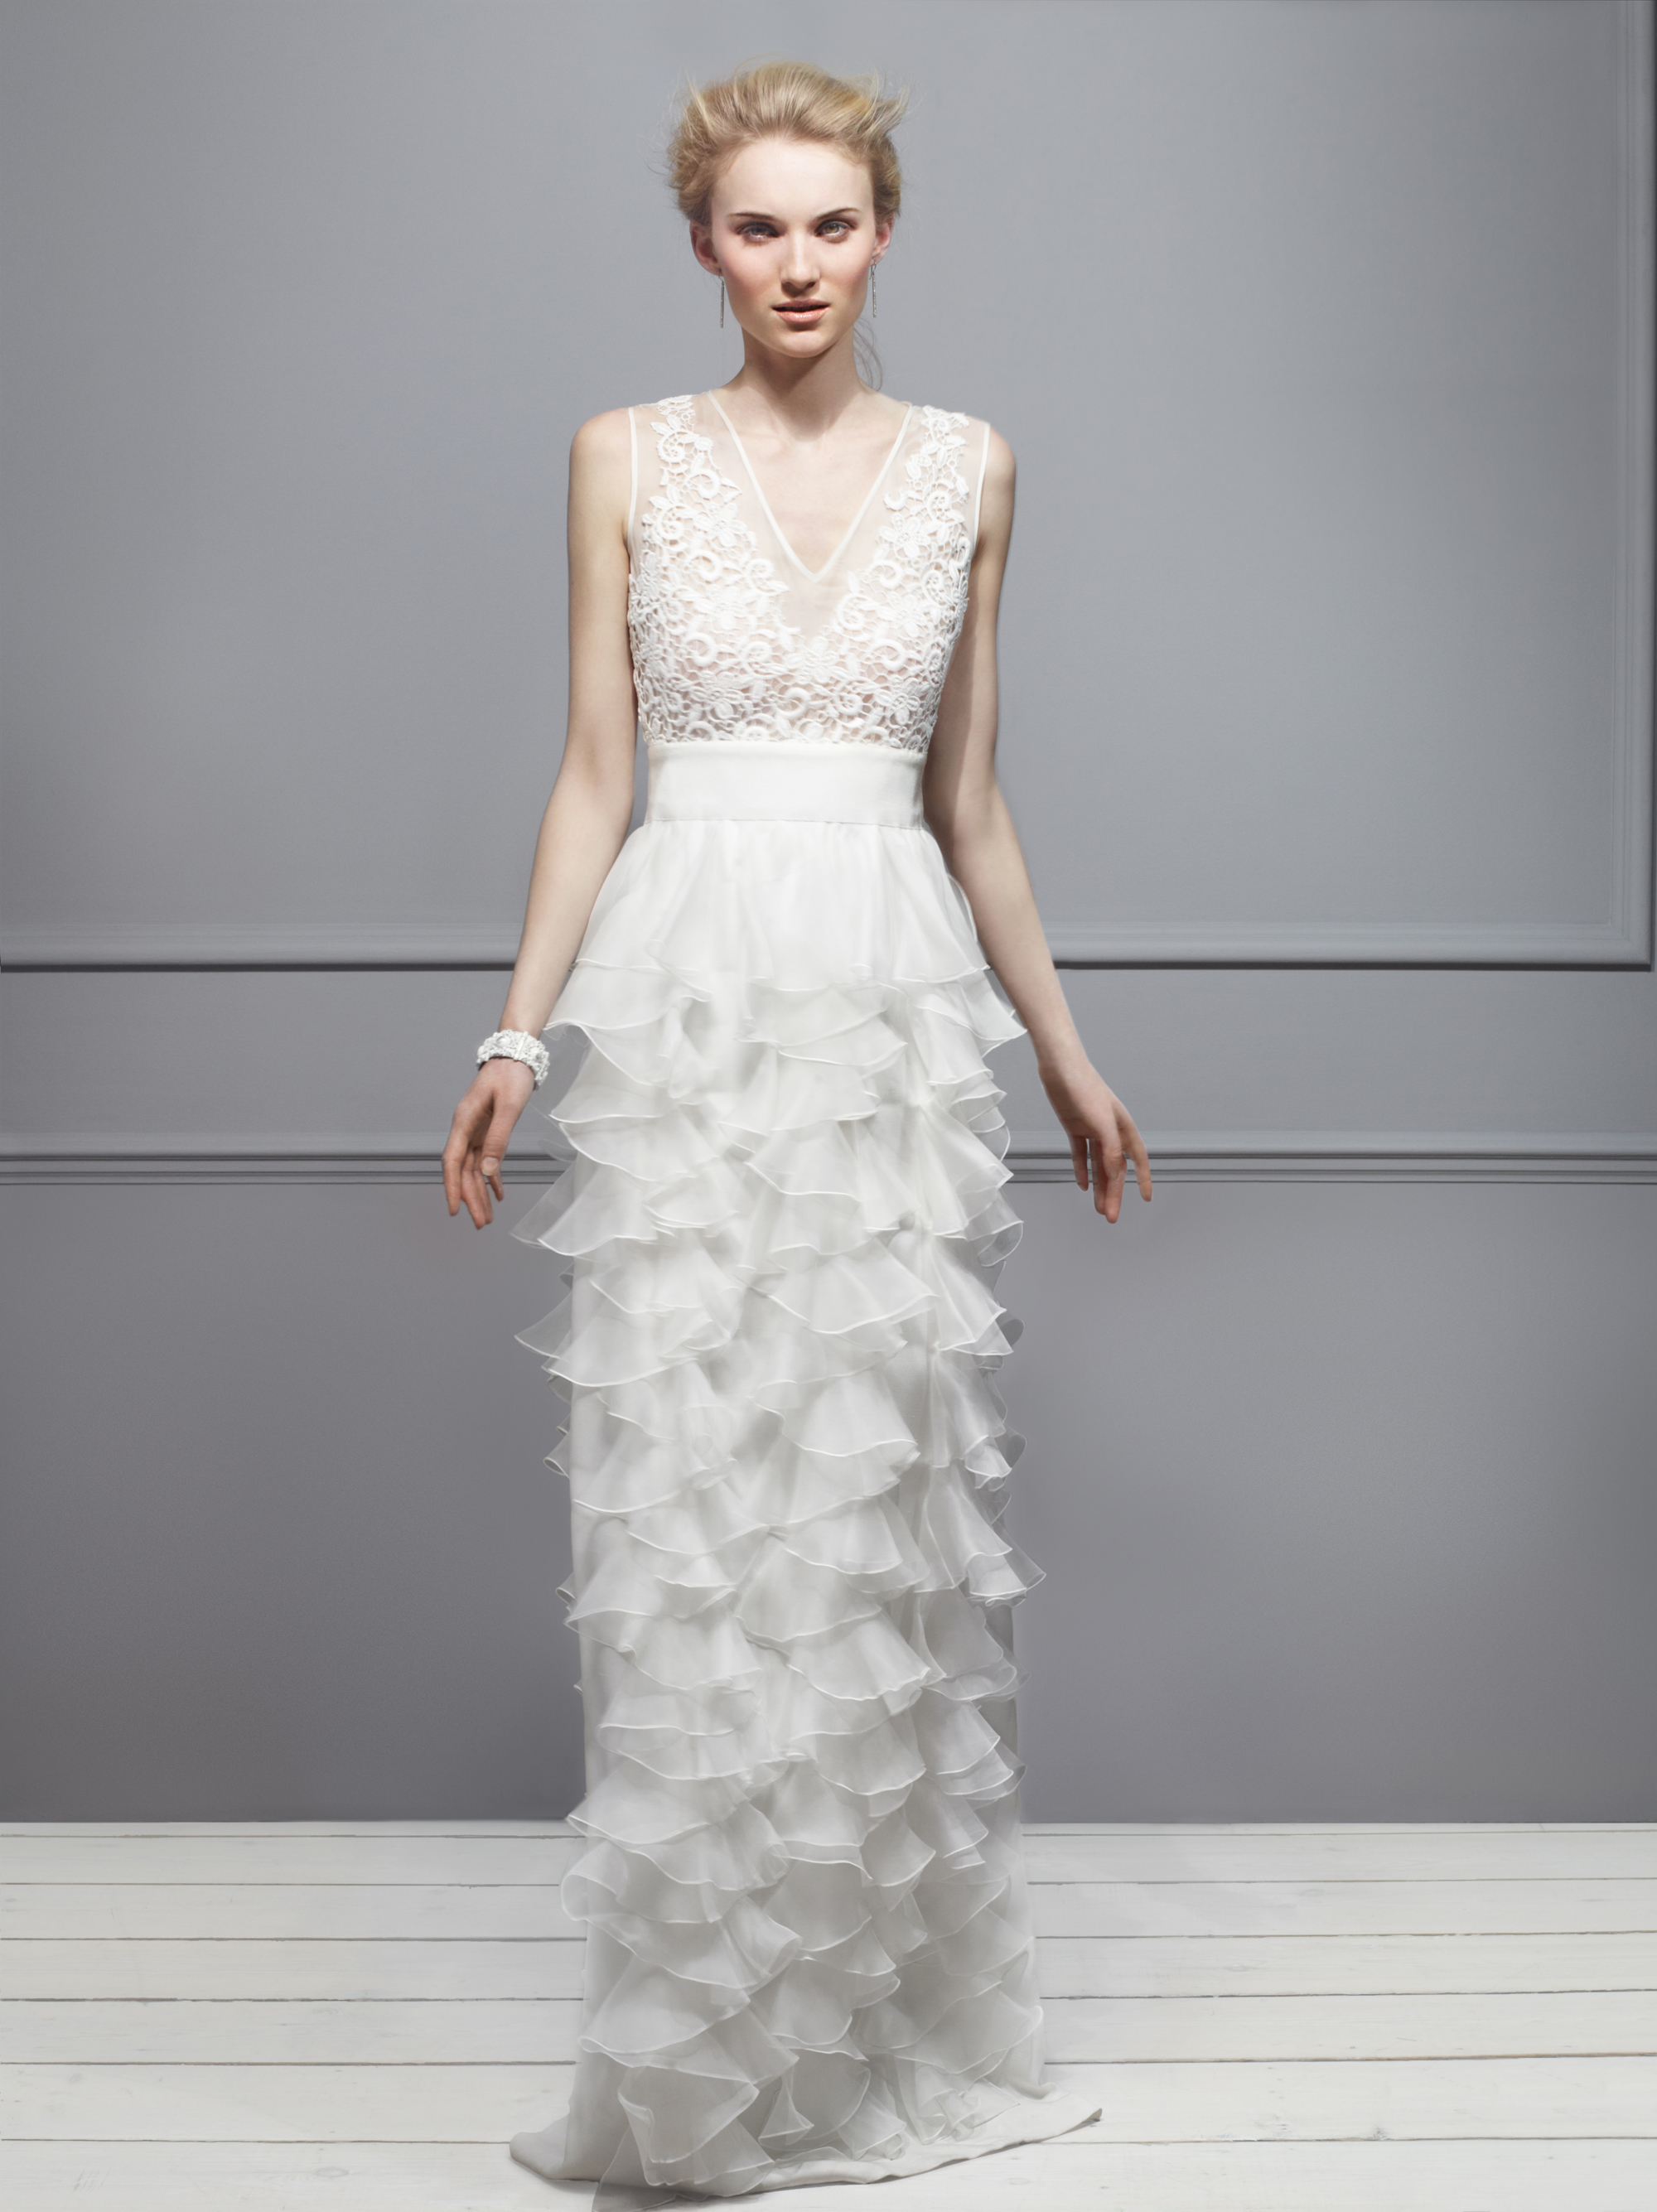 giambattista valli wedding dress 2013 exclusive bridal designer